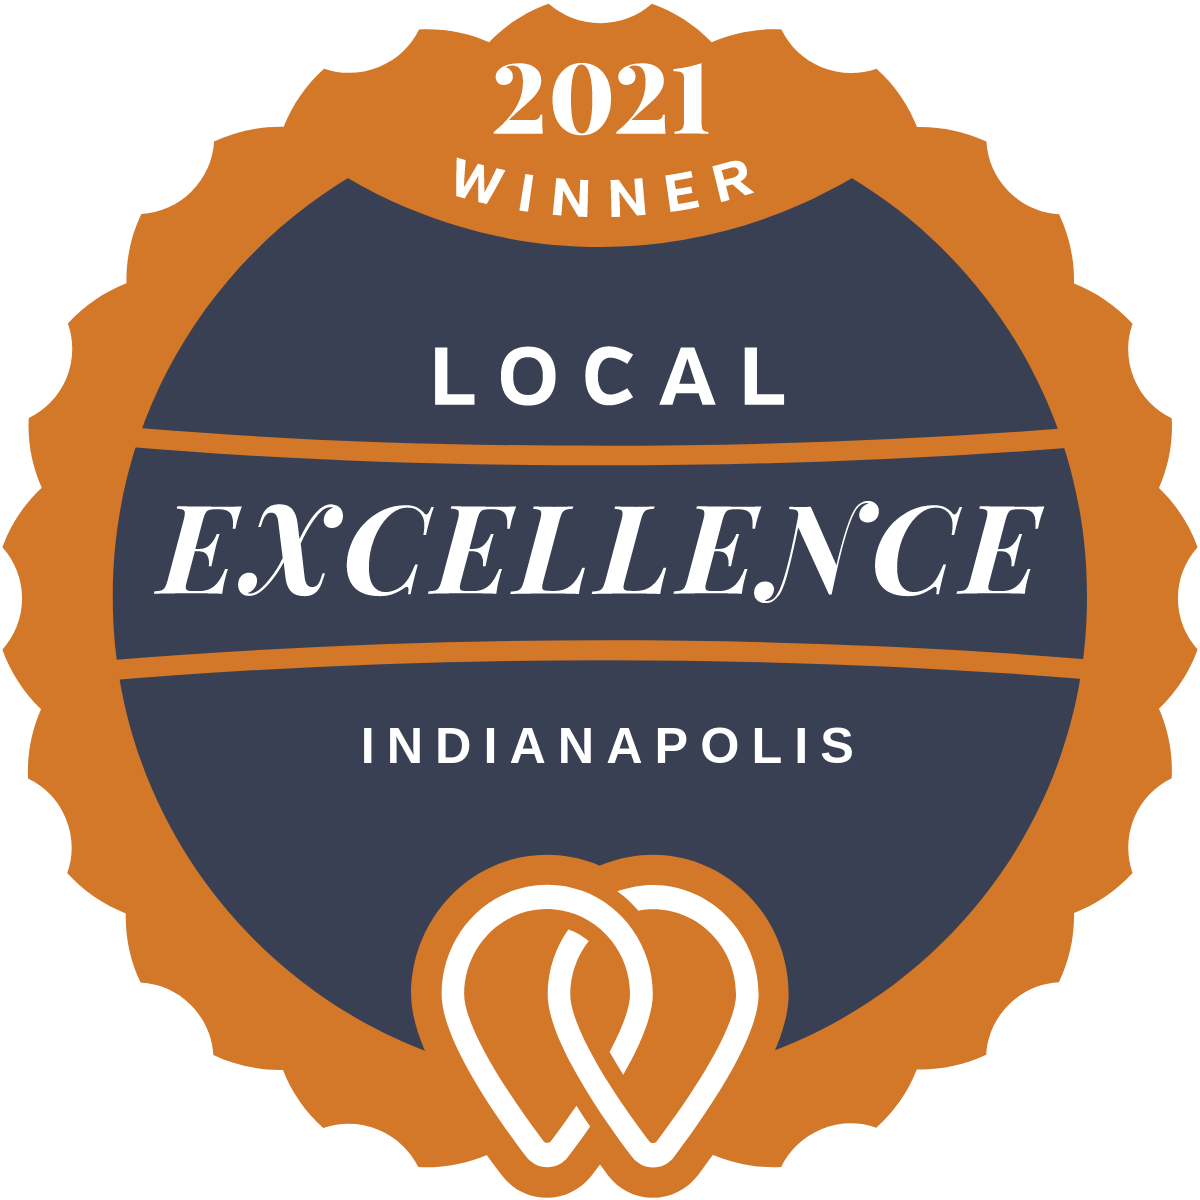 2021 Local Excellence Winner in Indianapolis, IN